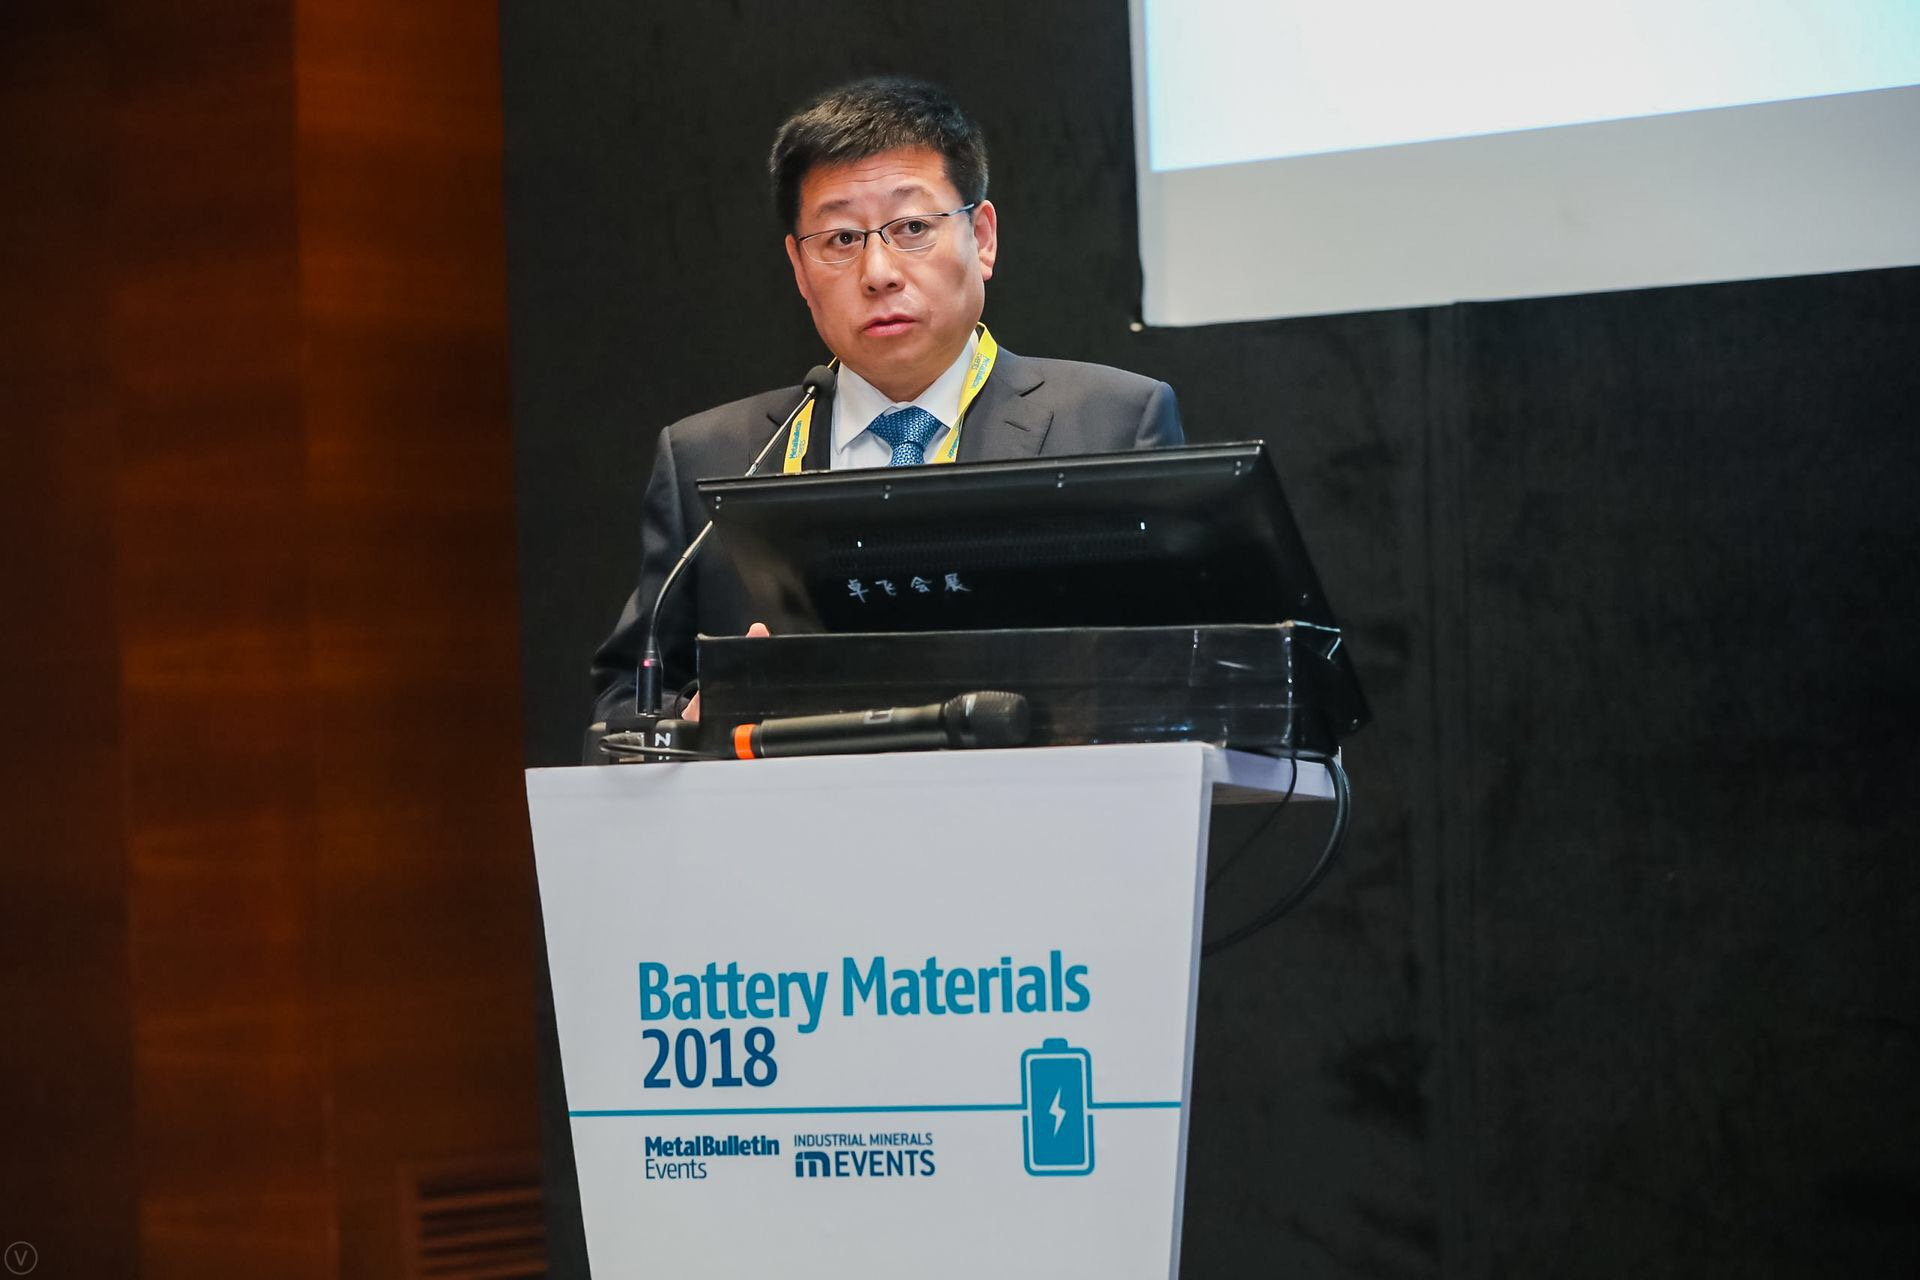 Being Invited to Speak in the 1st Battery Materials Event